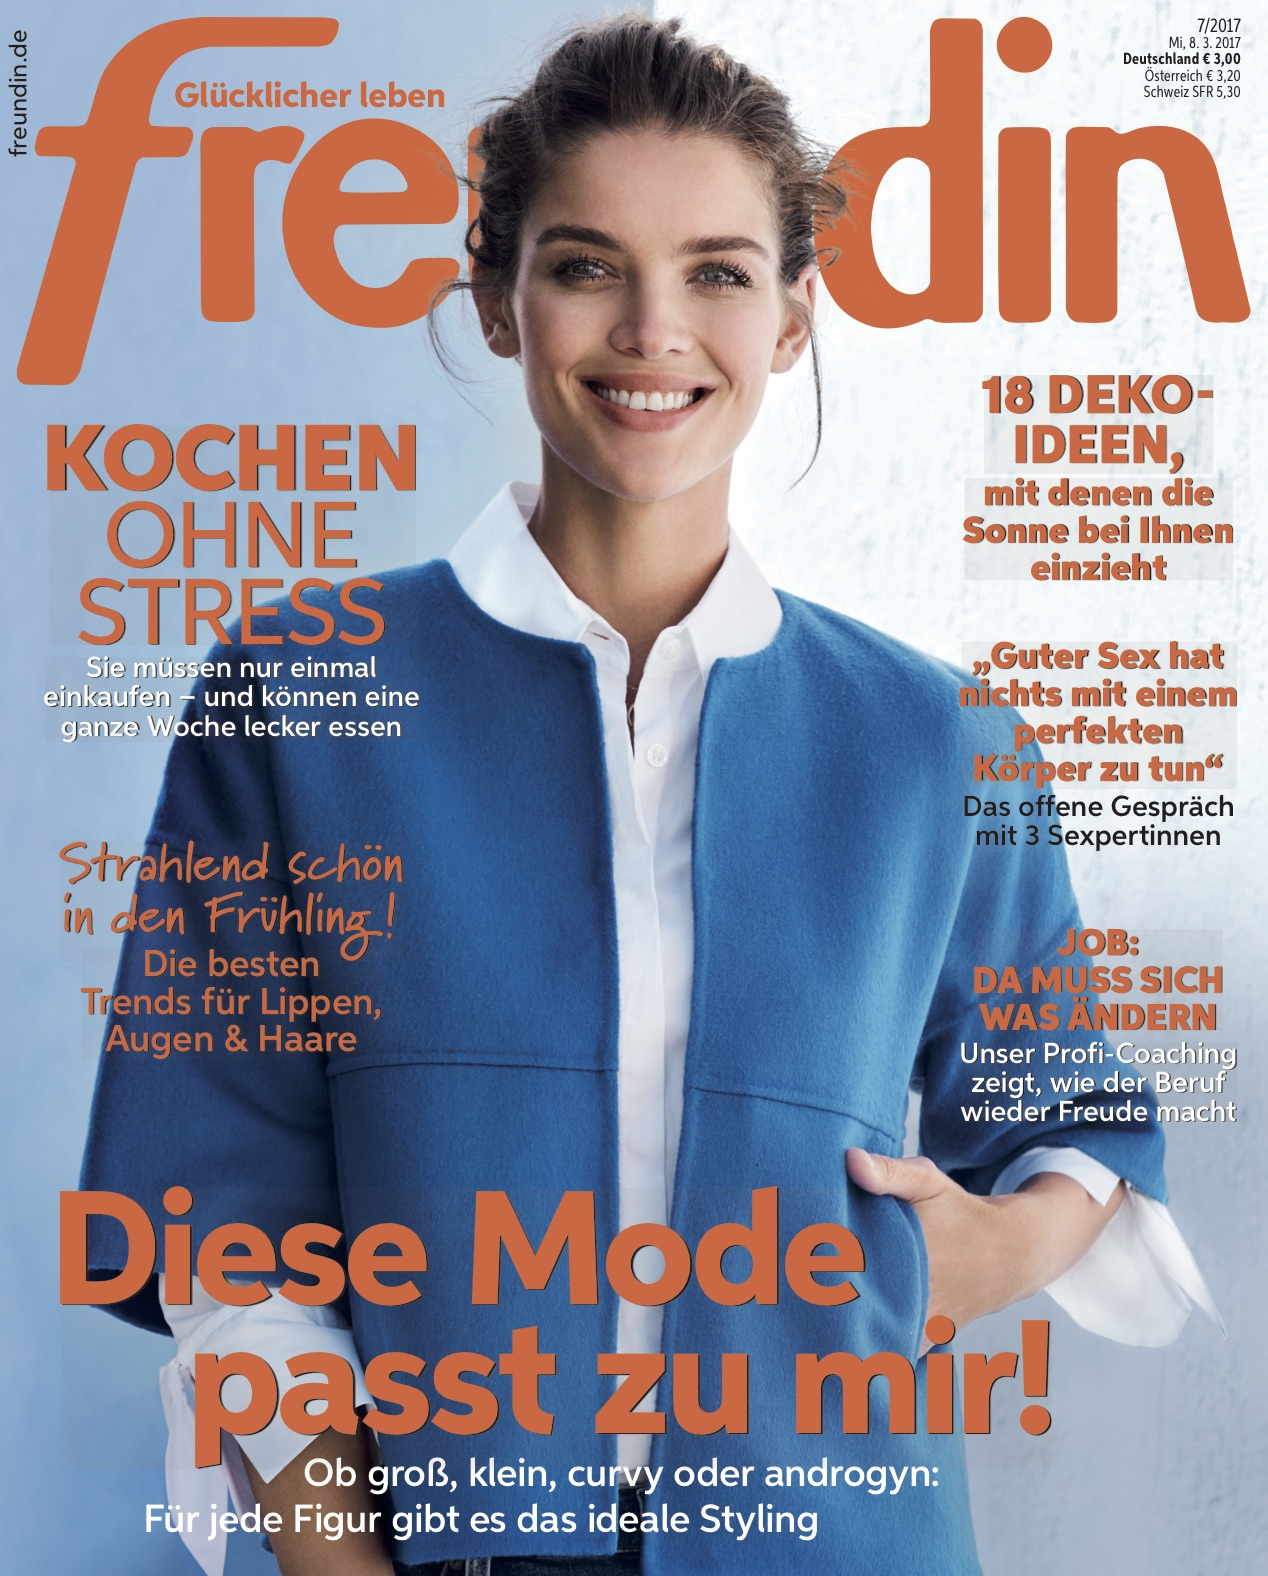 https://production-pool.com/wp-content/uploads/2017/07/F07_COVER_Werbung.jpg